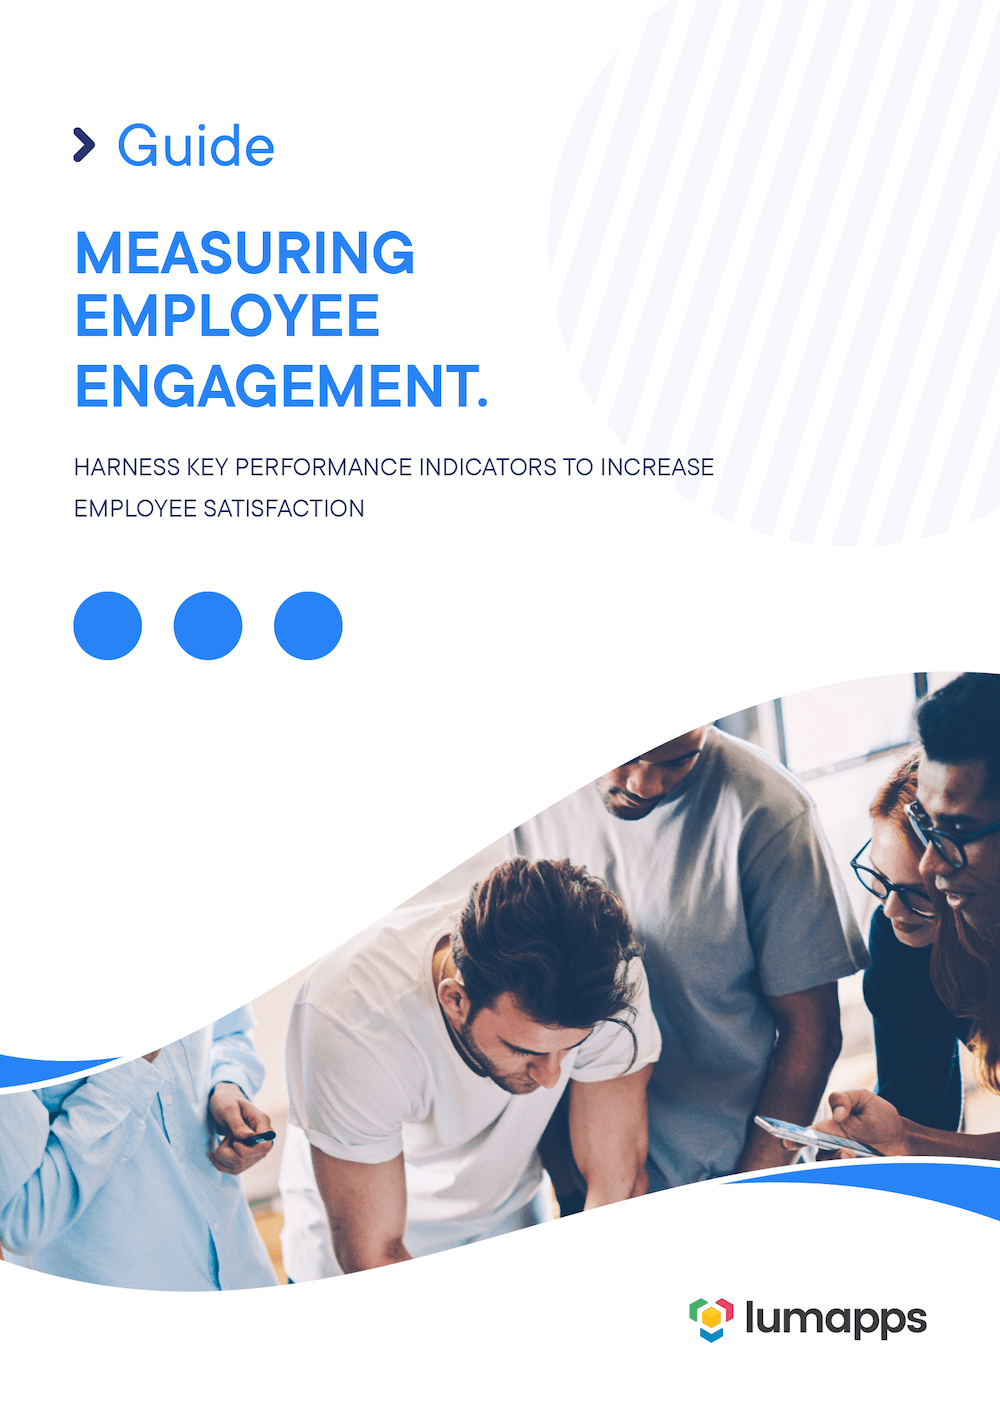 Guide Measuring Employee Engagement